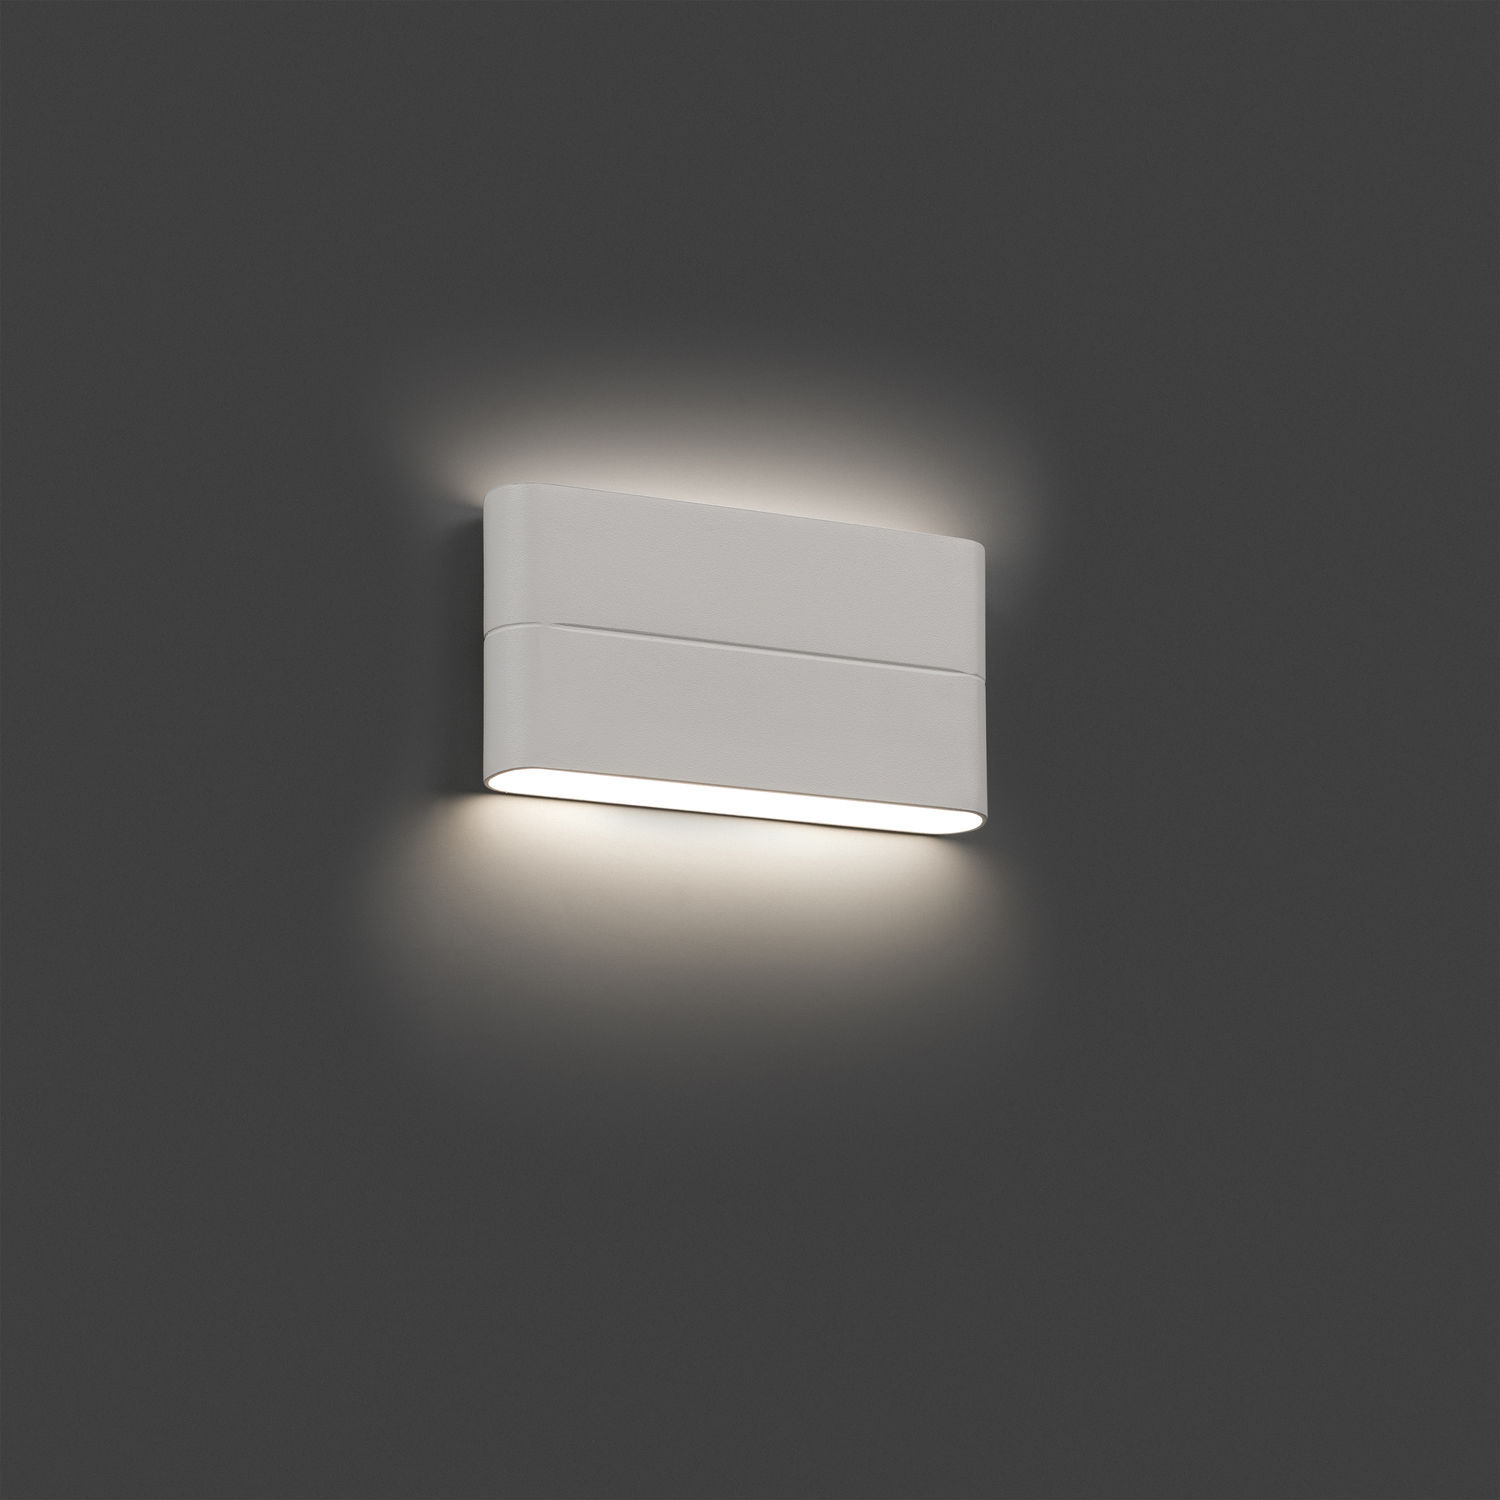 Applique murale d 39 ext rieur aday 2 led ip54 blanc l17 for Applique murale exterieur bricoman